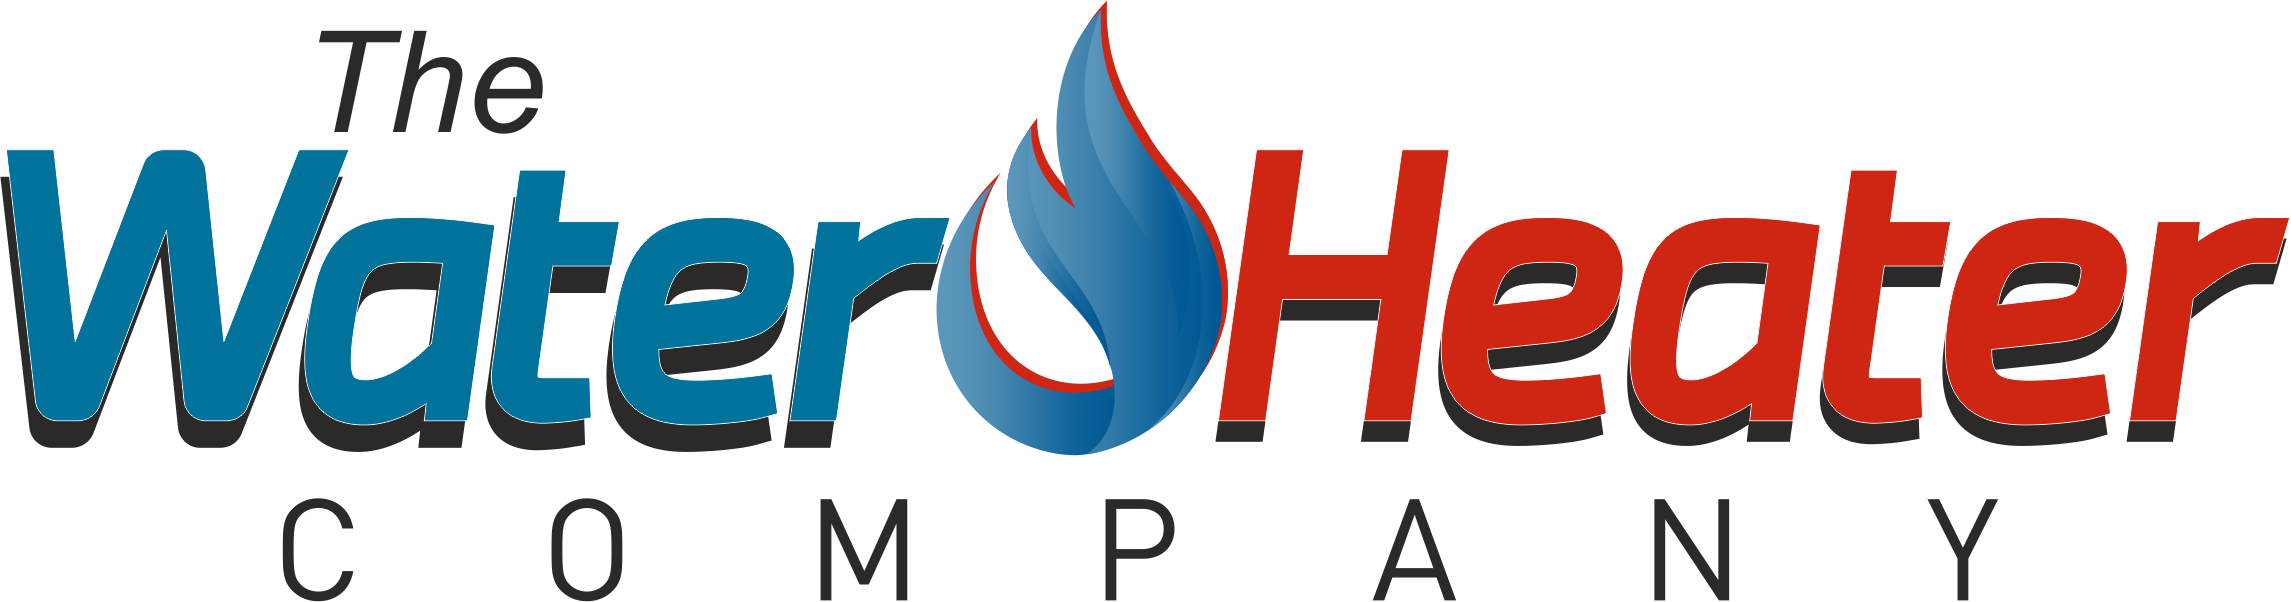 The Water Heater Company